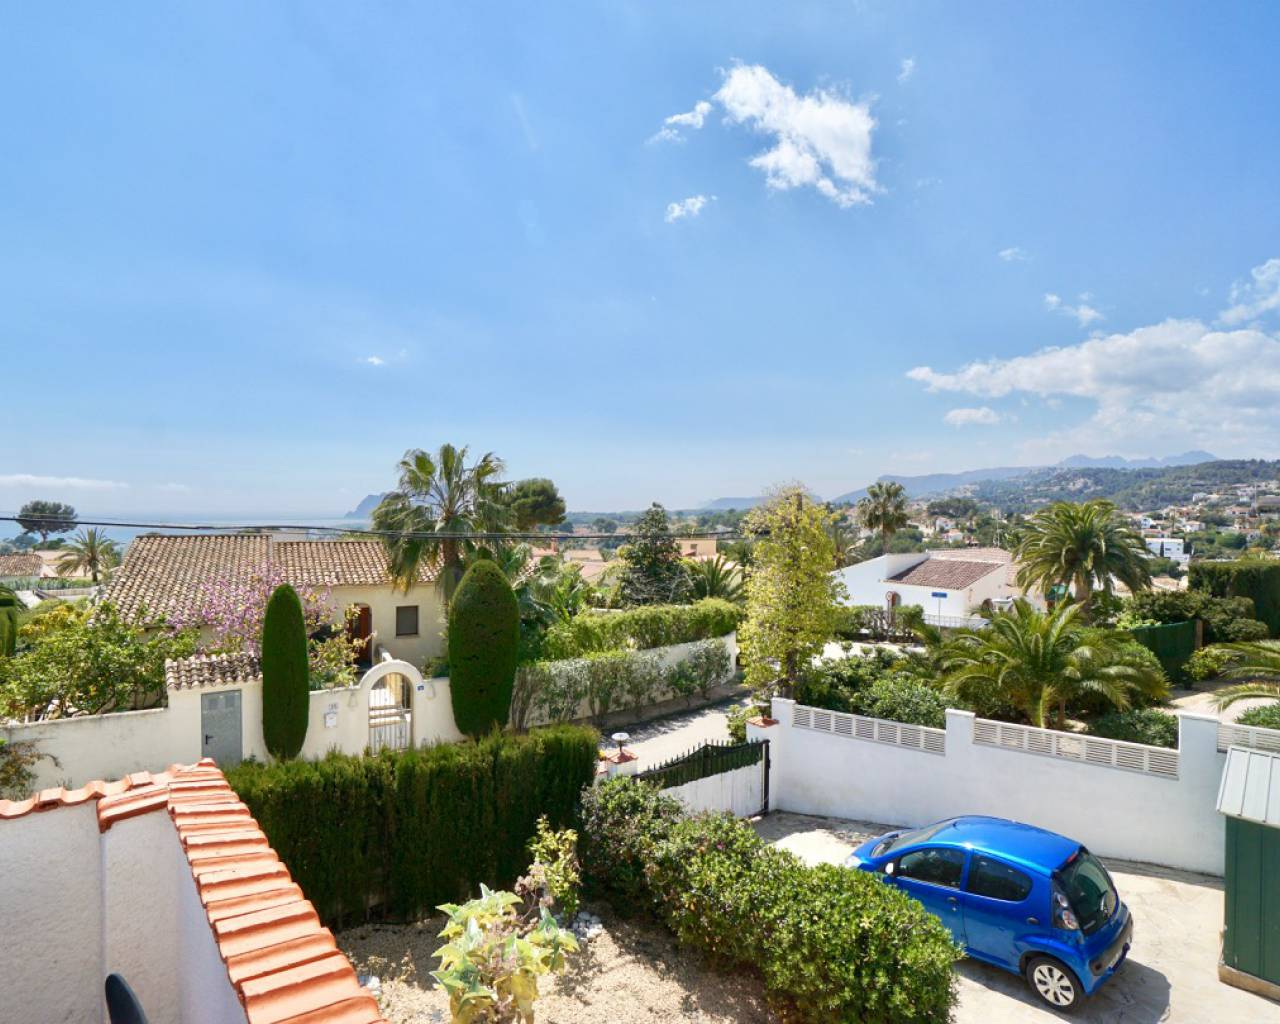 Sale - Semi-Detached Villa - Benissa - San Jaime